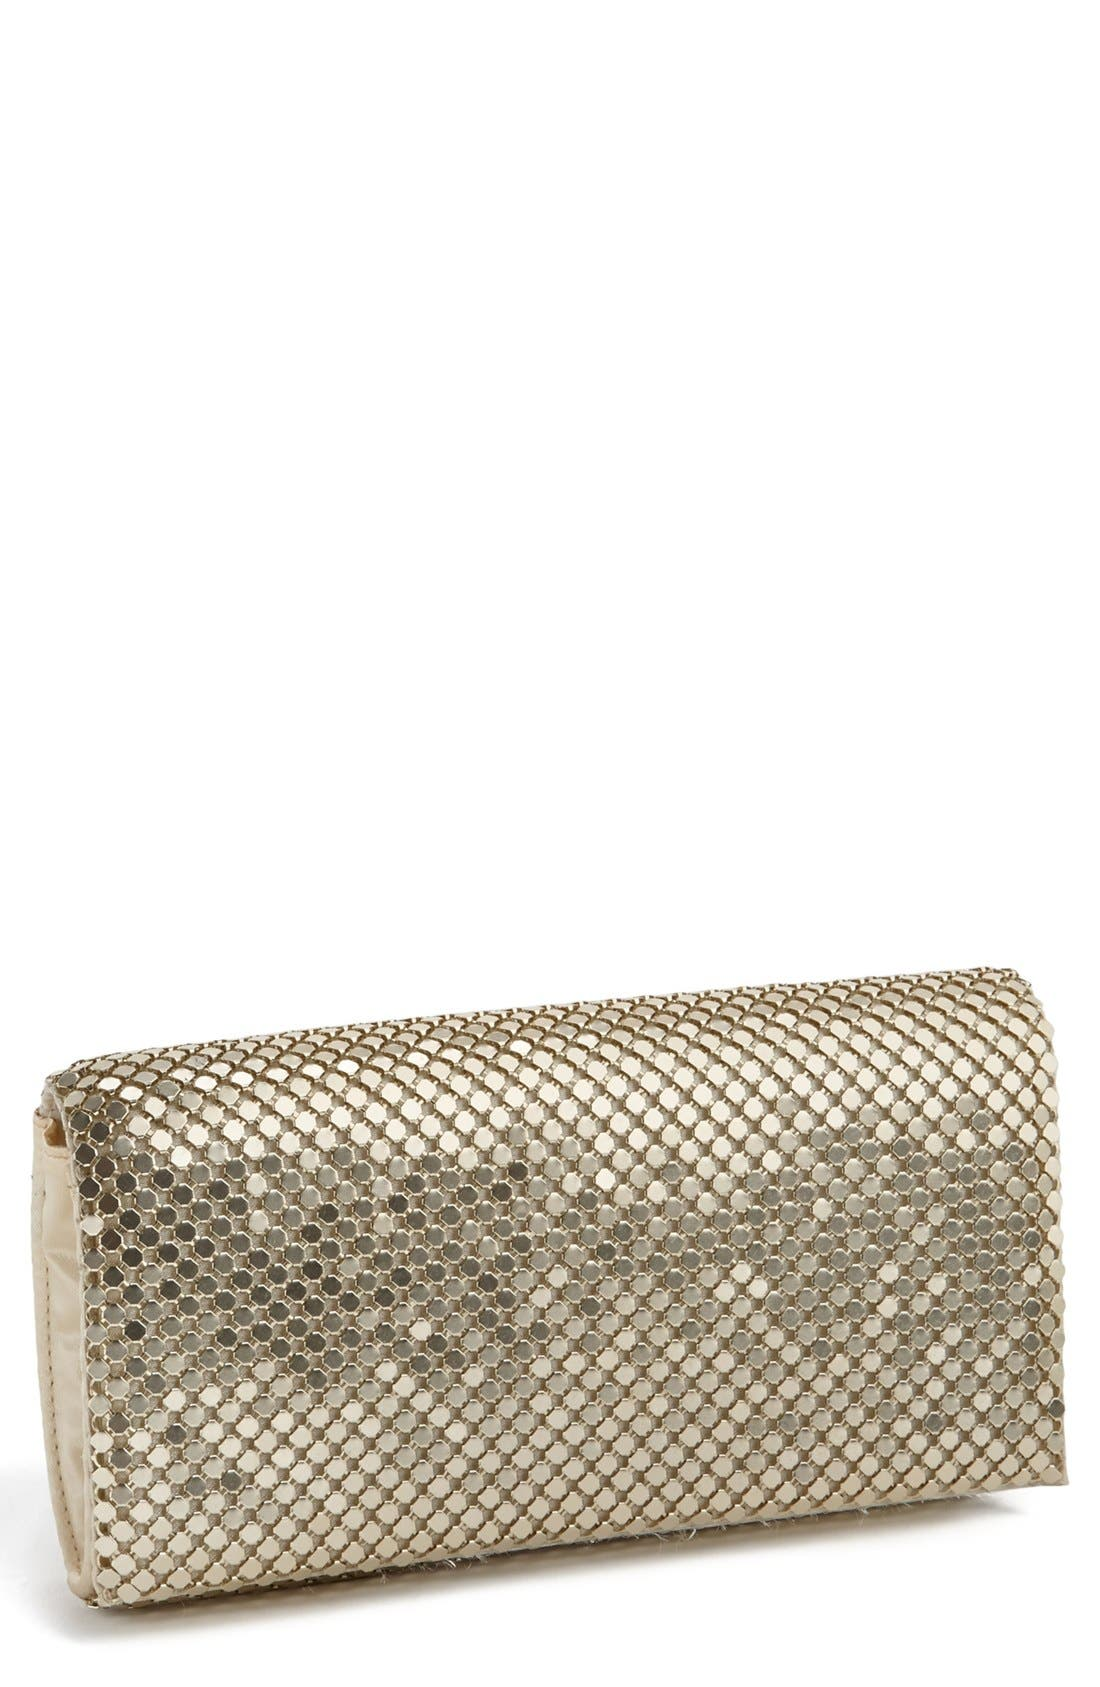 Alternate Image 1 Selected - Jessica McClintock Mesh Clutch